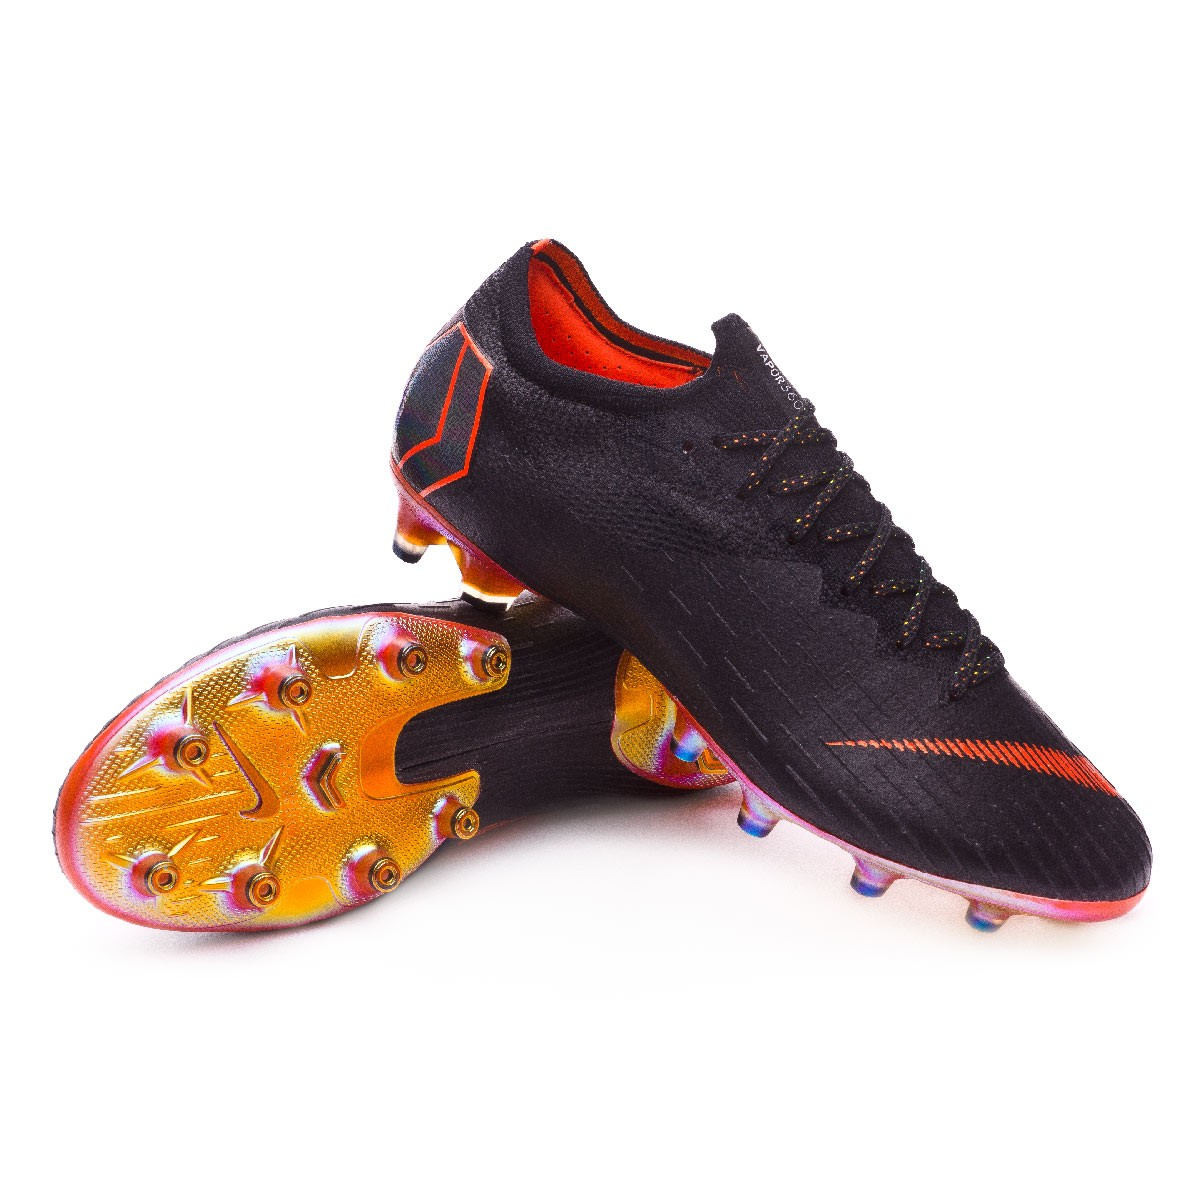 Boot Nike Mercurial Vapor XII Elite AG-Pro Black-Total orang